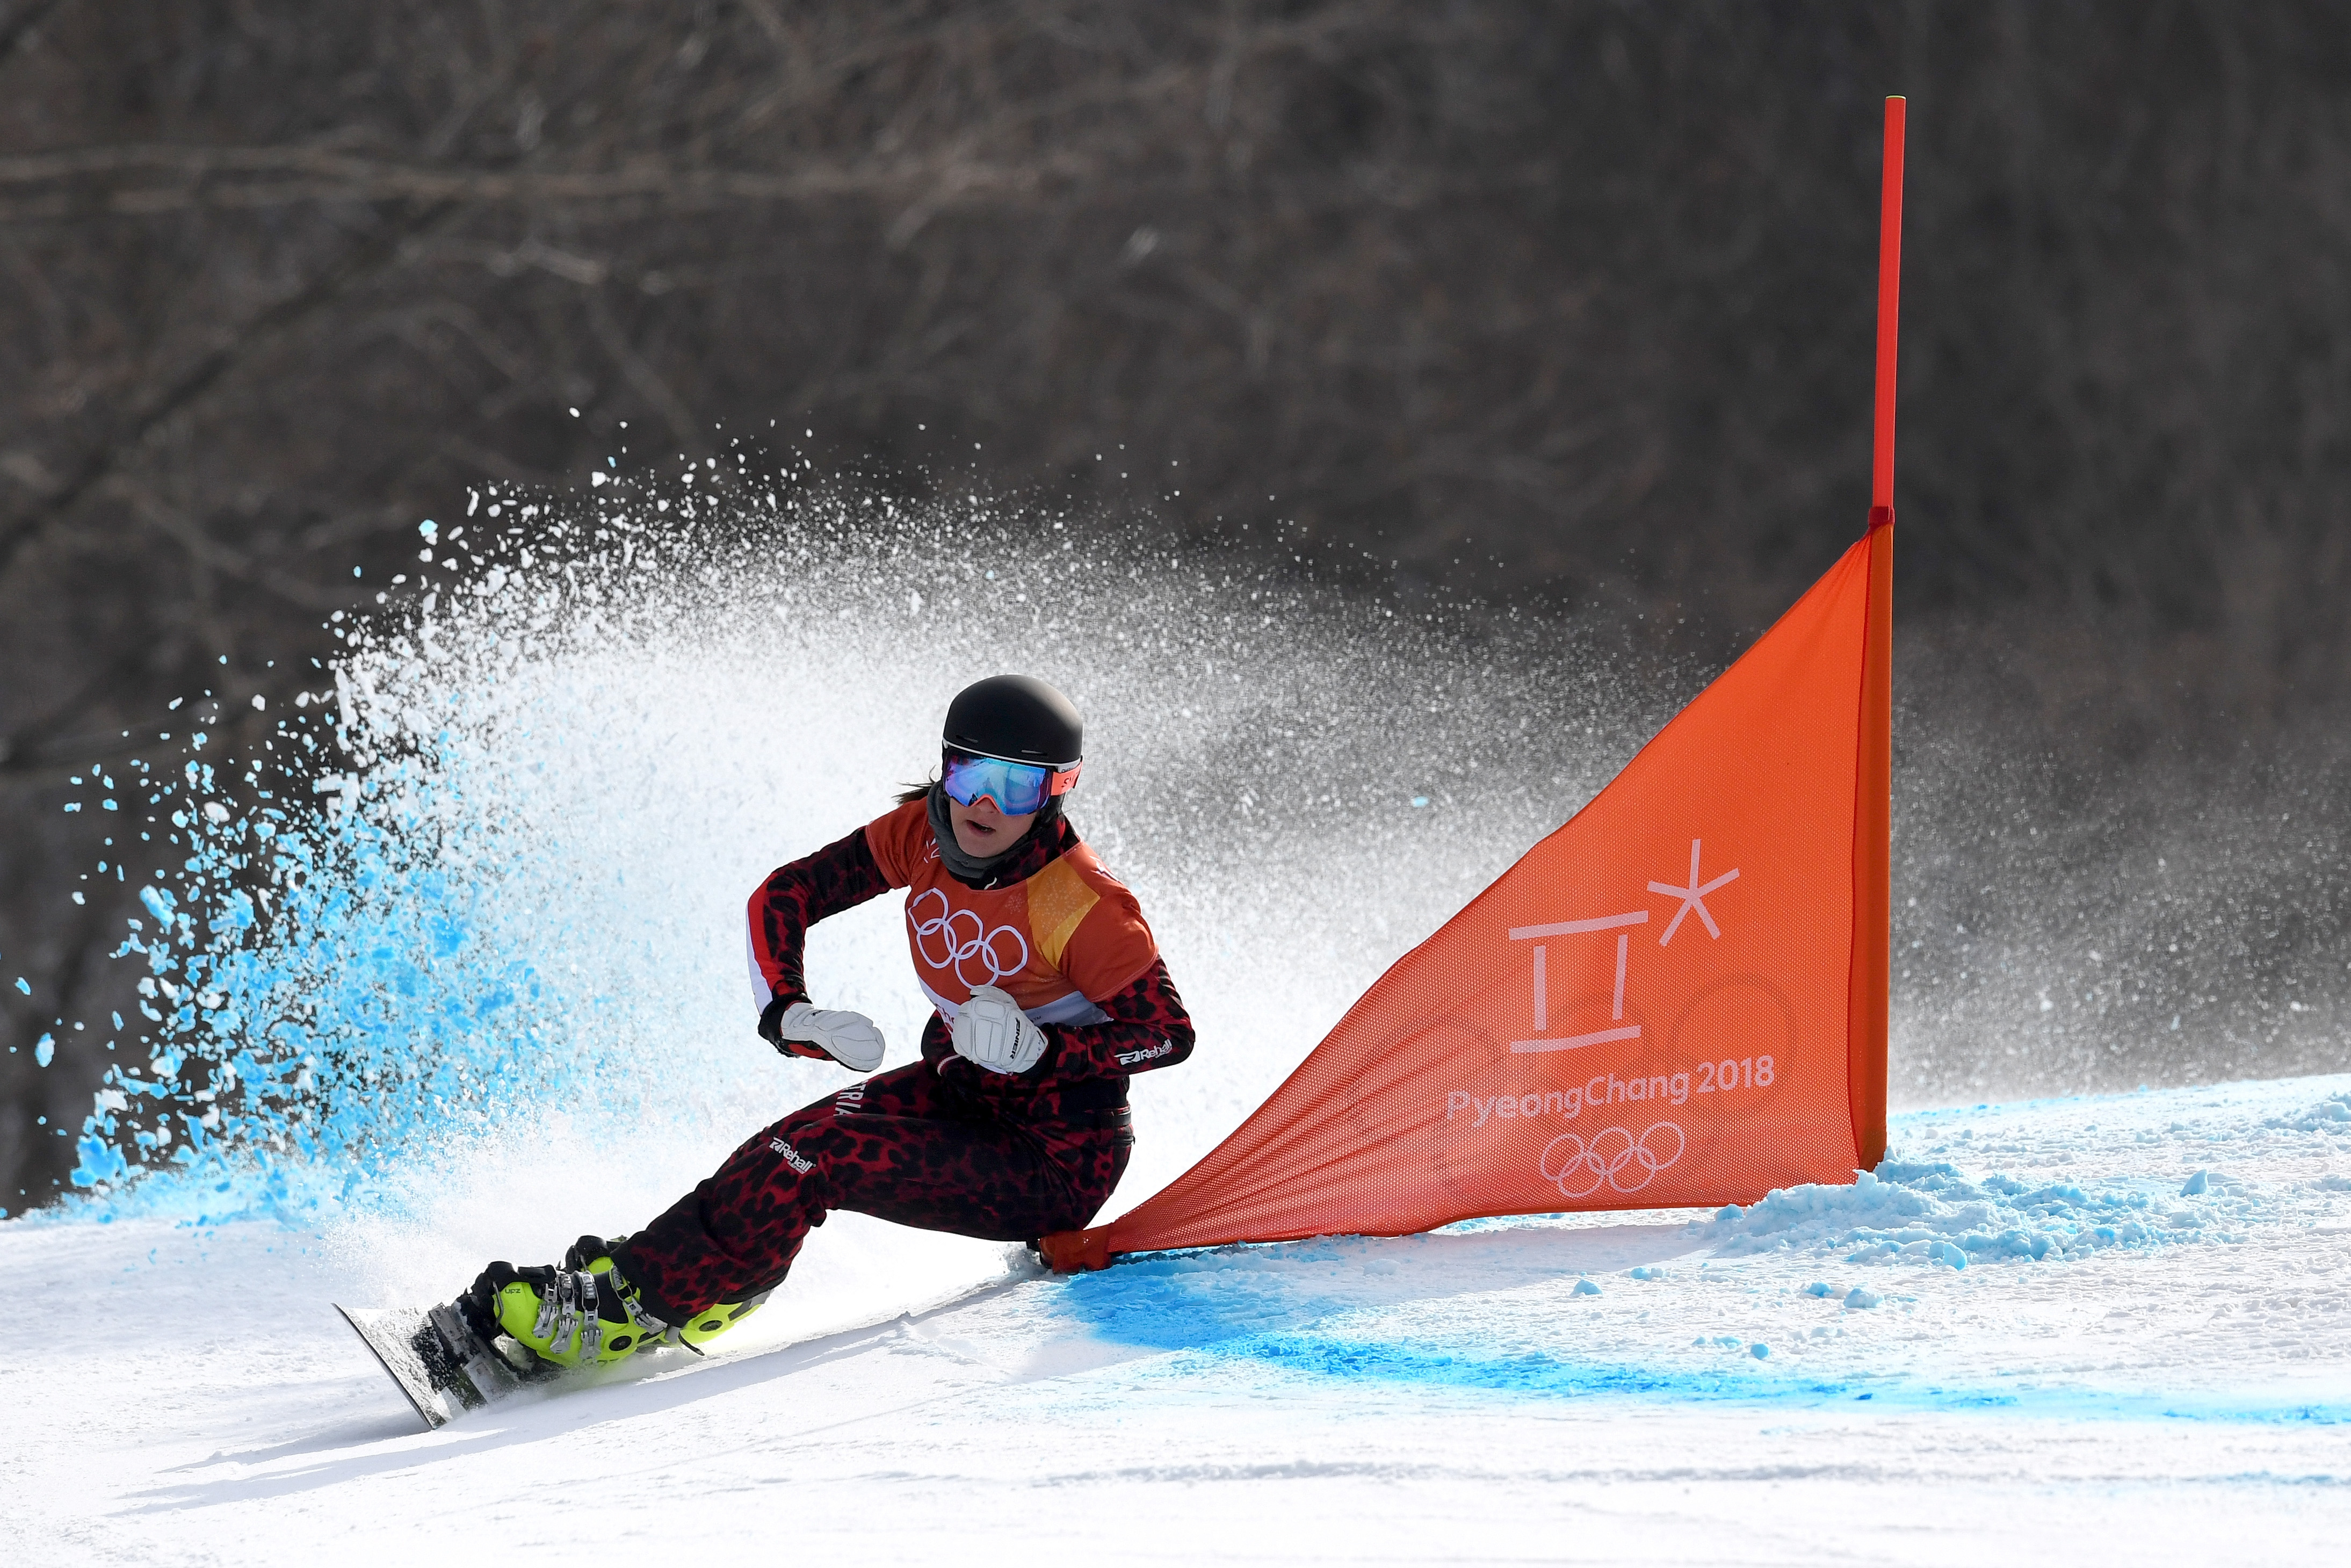 PYEONGCHANG-GUN, SOUTH KOREA - FEBRUARY 24:  Daniela Ulbing of Austria competes during the Ladies' Snowboard Parallel Giant Slalom 1/8 Final on day fifteen of the PyeongChang 2018 Winter Olympic Games at Phoenix Snow Park on February 24, 2018 in Pyeongchang-gun, South Korea.  (Photo by David Ramos/Getty Images)